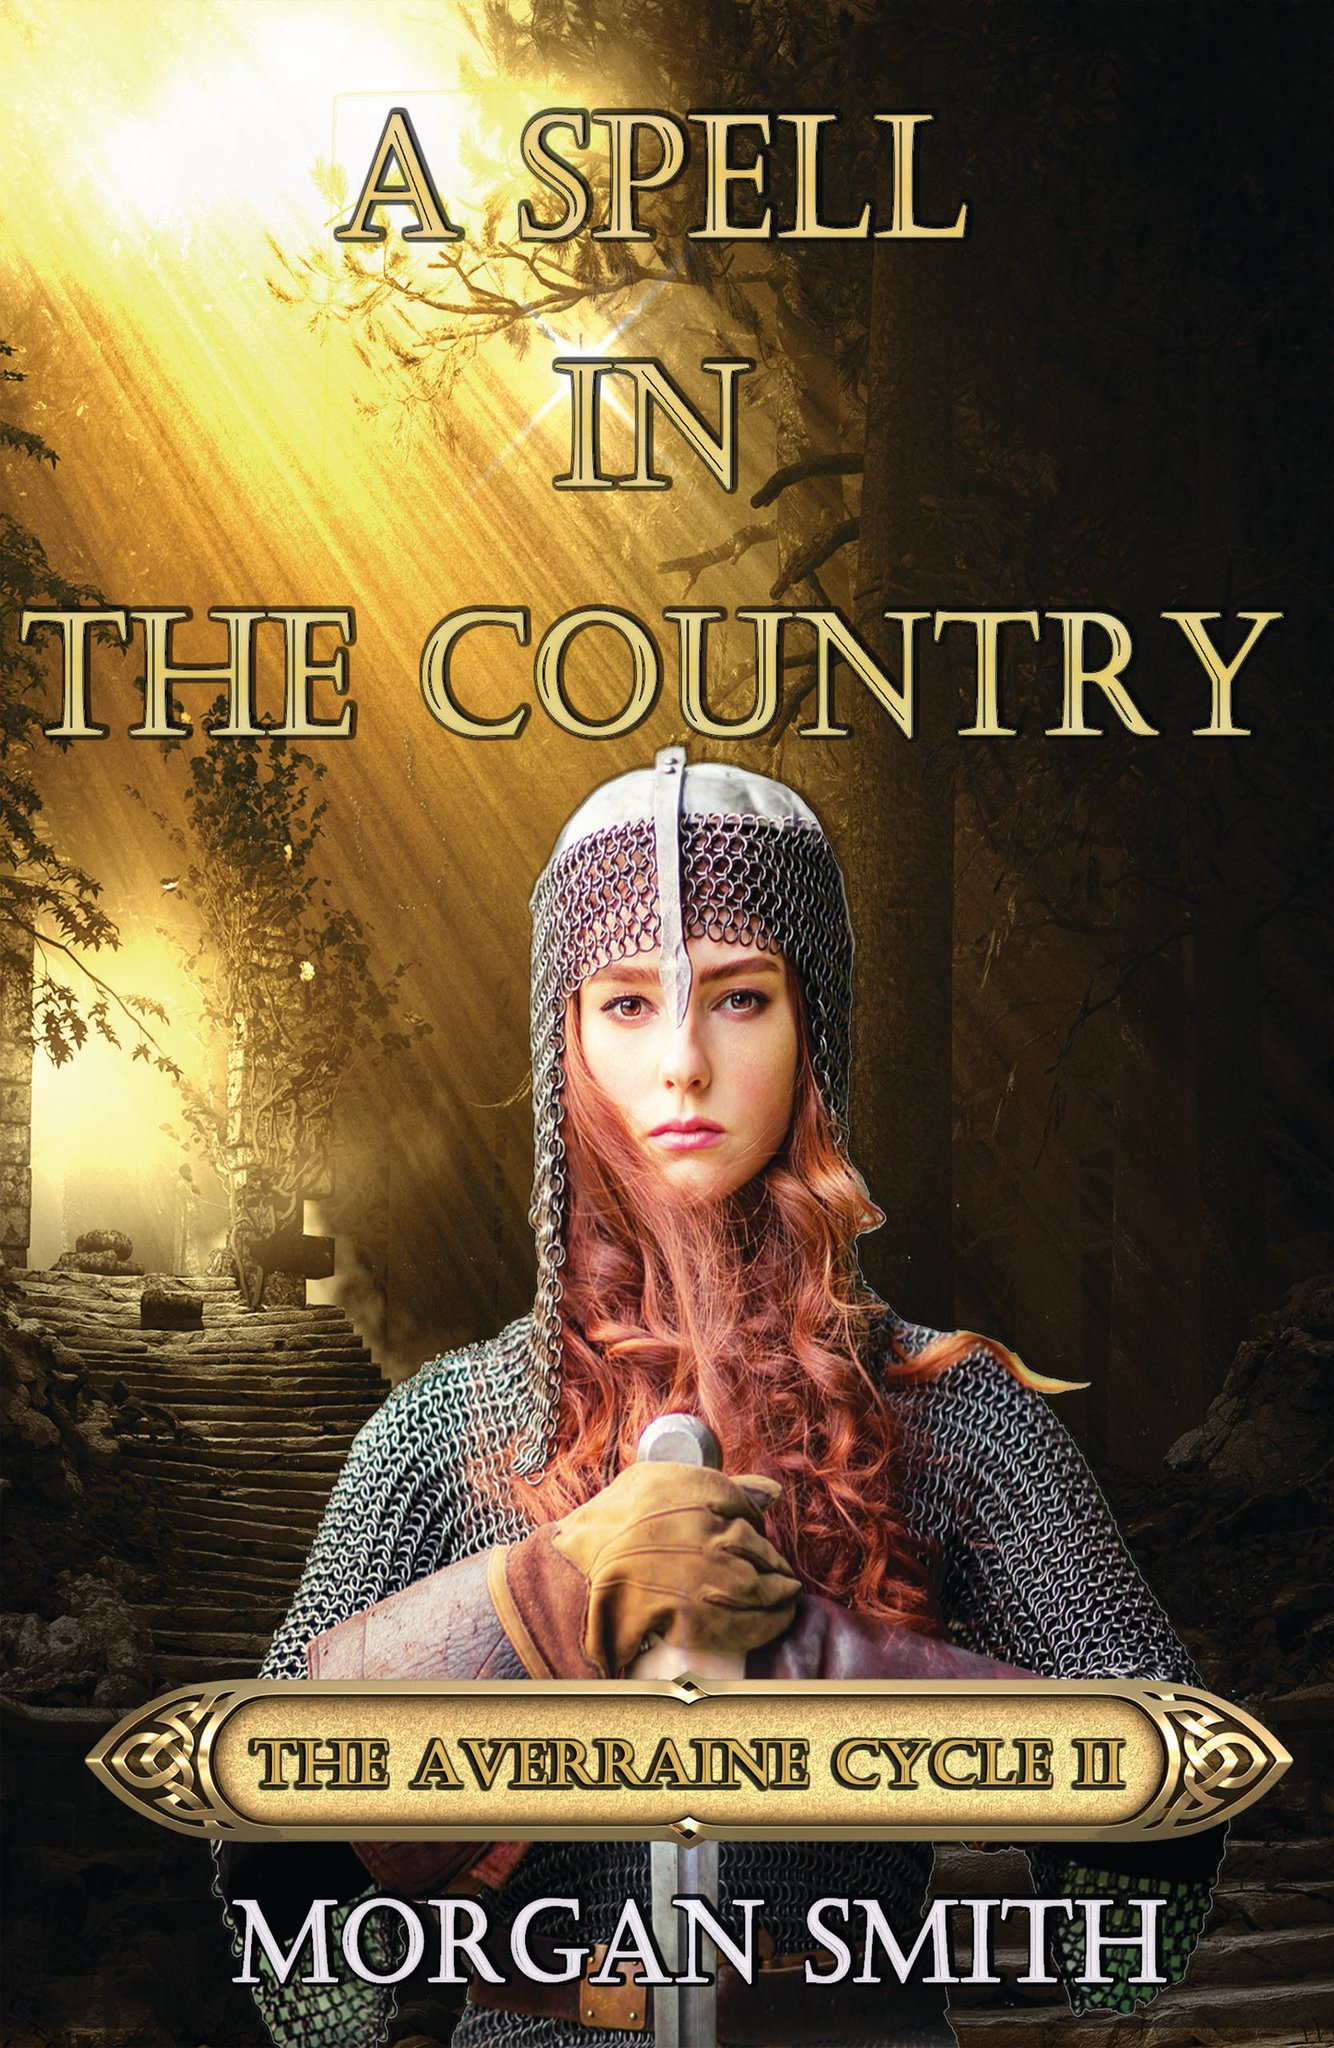 A Spell in the Country by Morgan Smith